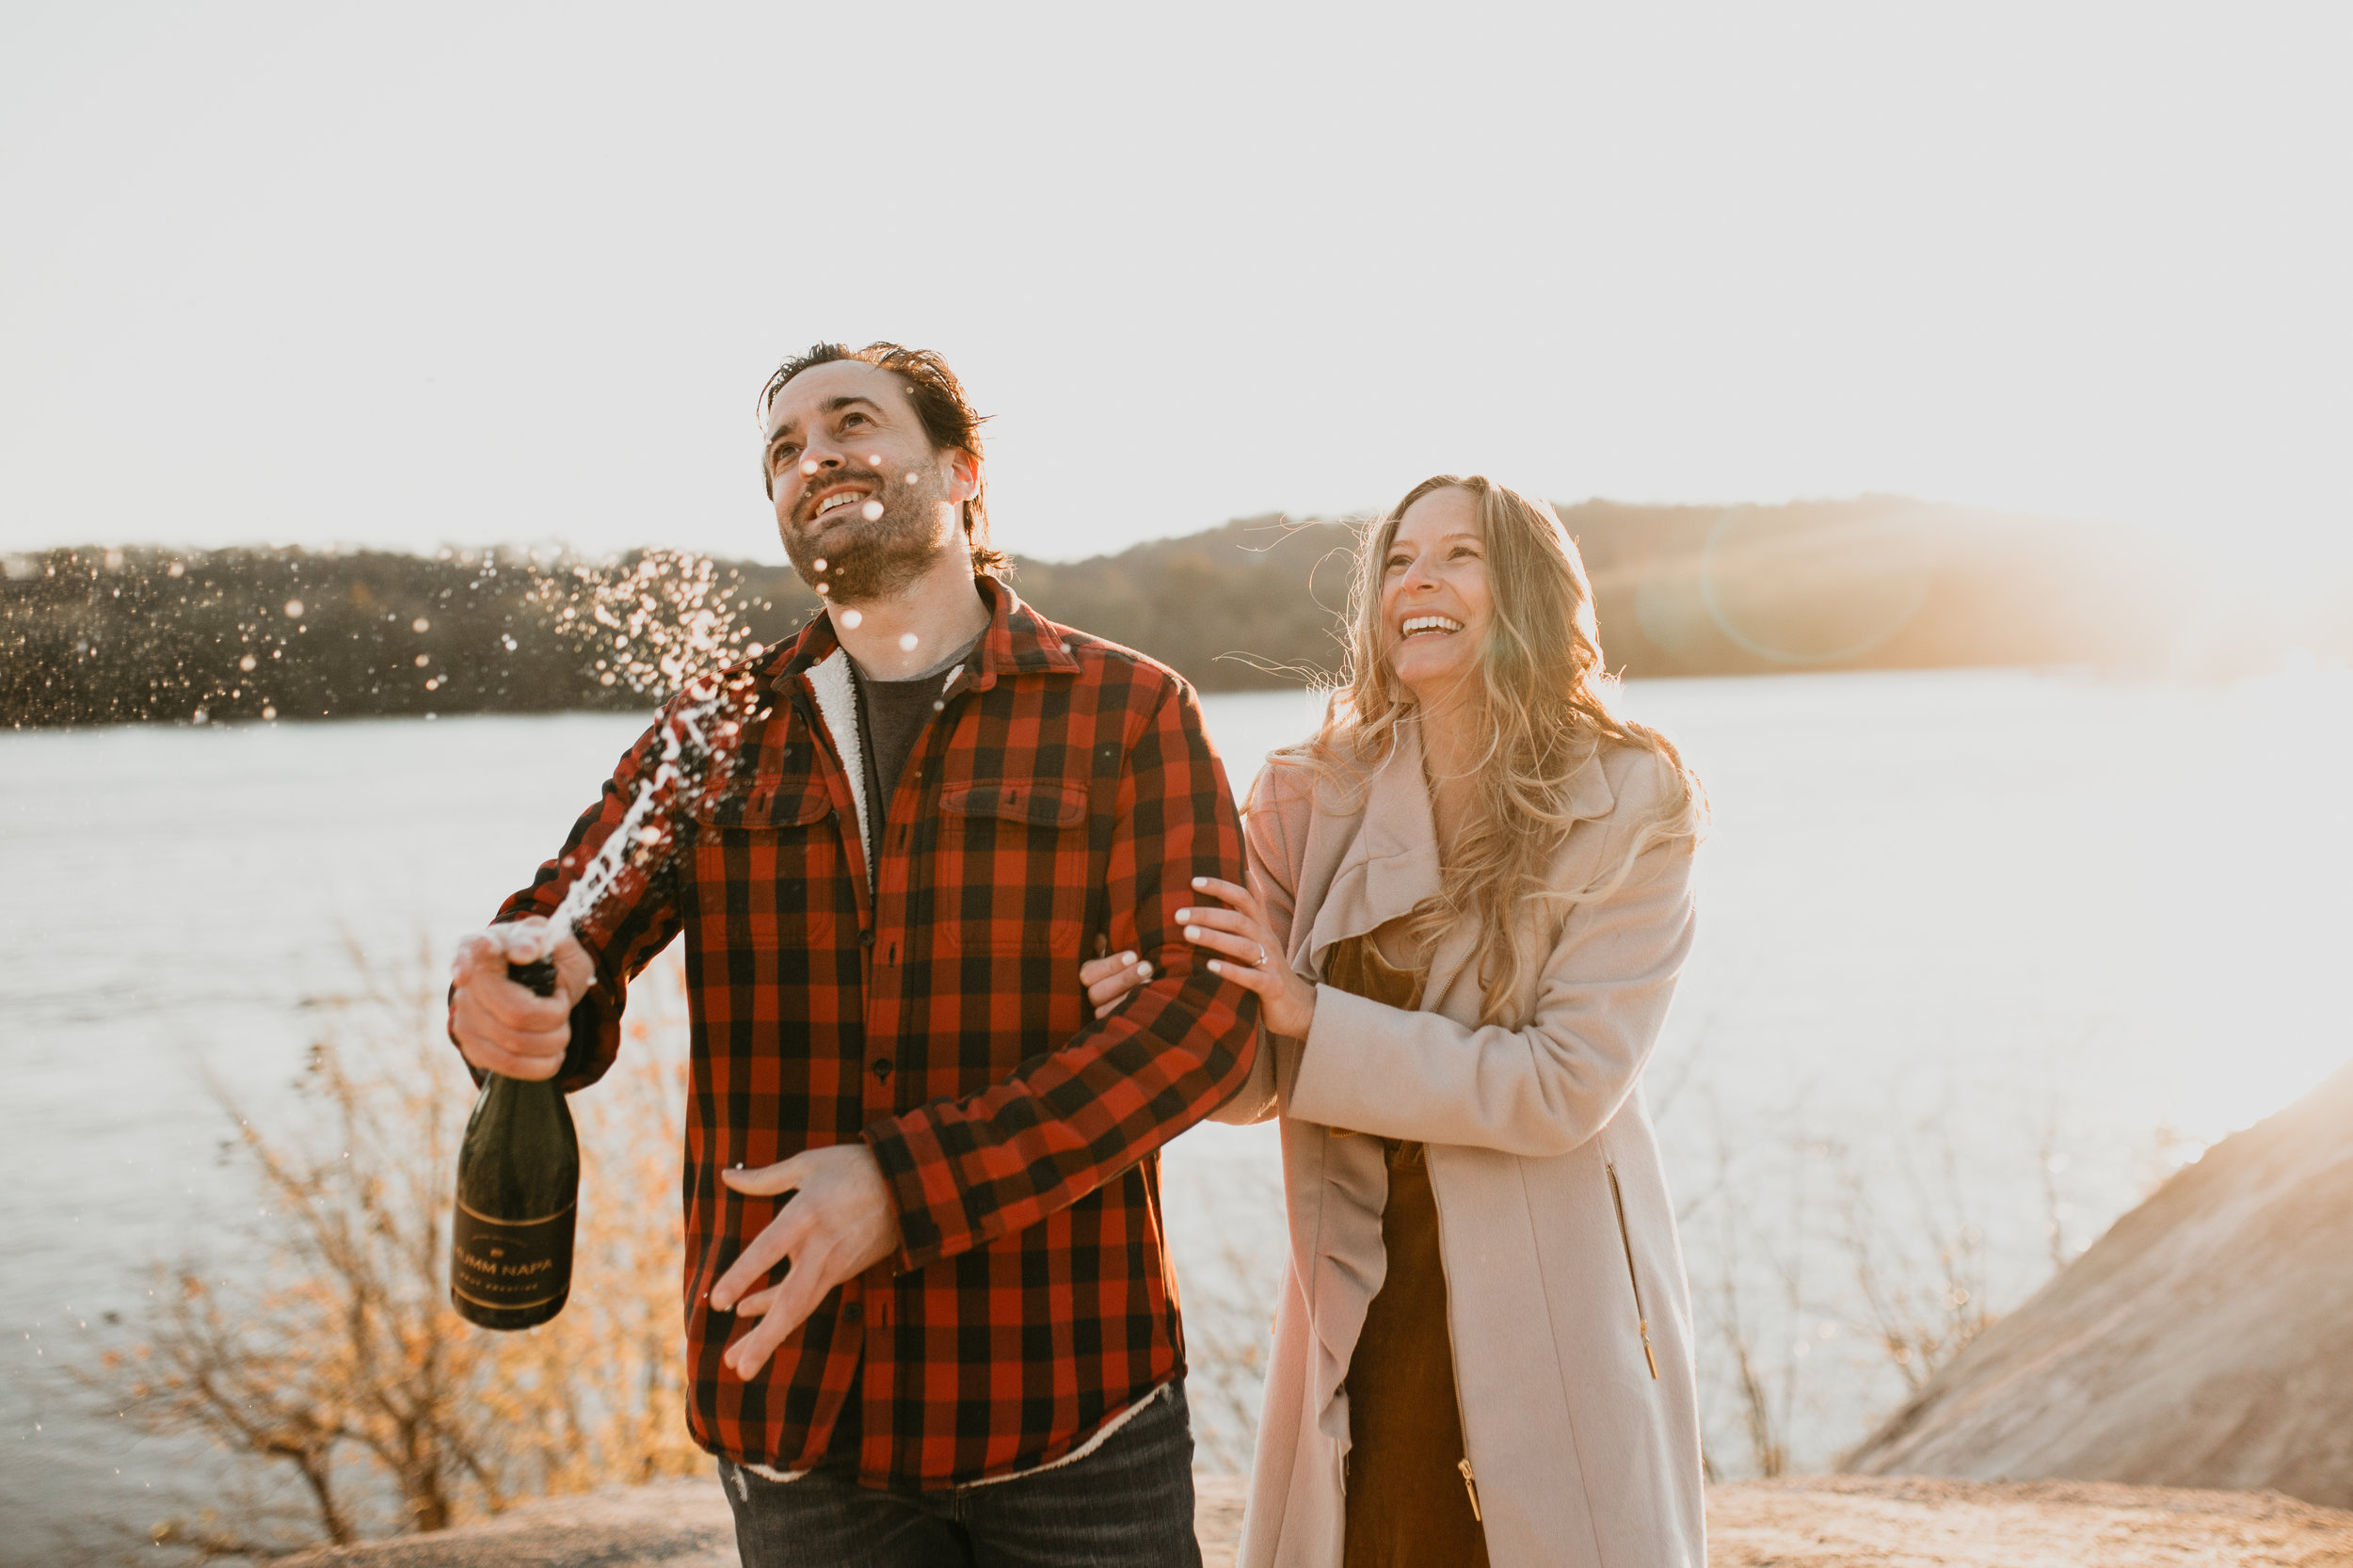 nicole-daacke-photography-white-cliffs-of-conoy-in-lancaster-pa-pennsylvania-adventure-session-adventure-elopement-photographer-engagement session-in-lancaster-pa-photographer-golden-sunset-winter-solstice-wedding-riverside-elopement-4120.jpg